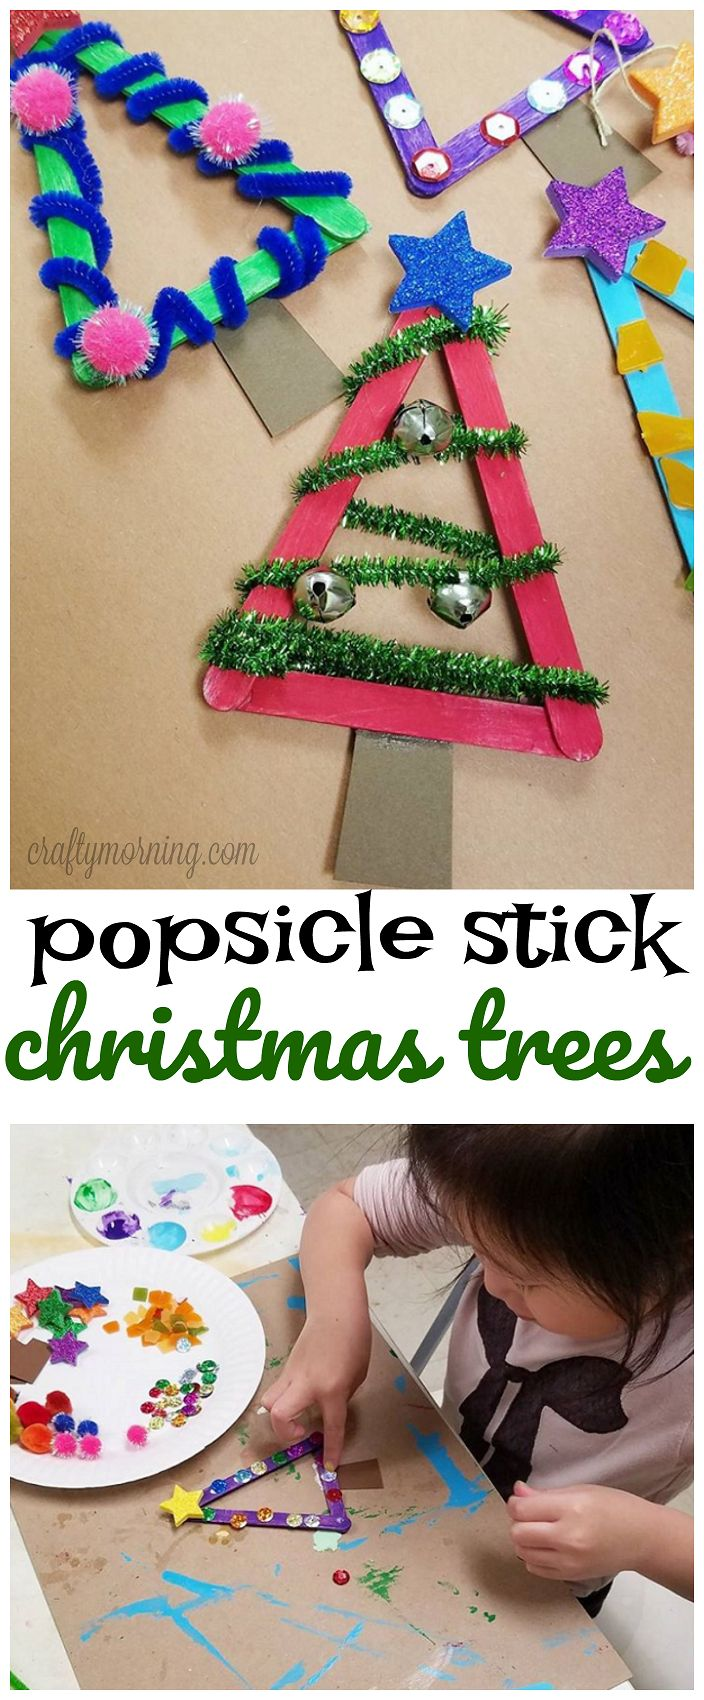 how to make a popsicle stick craft